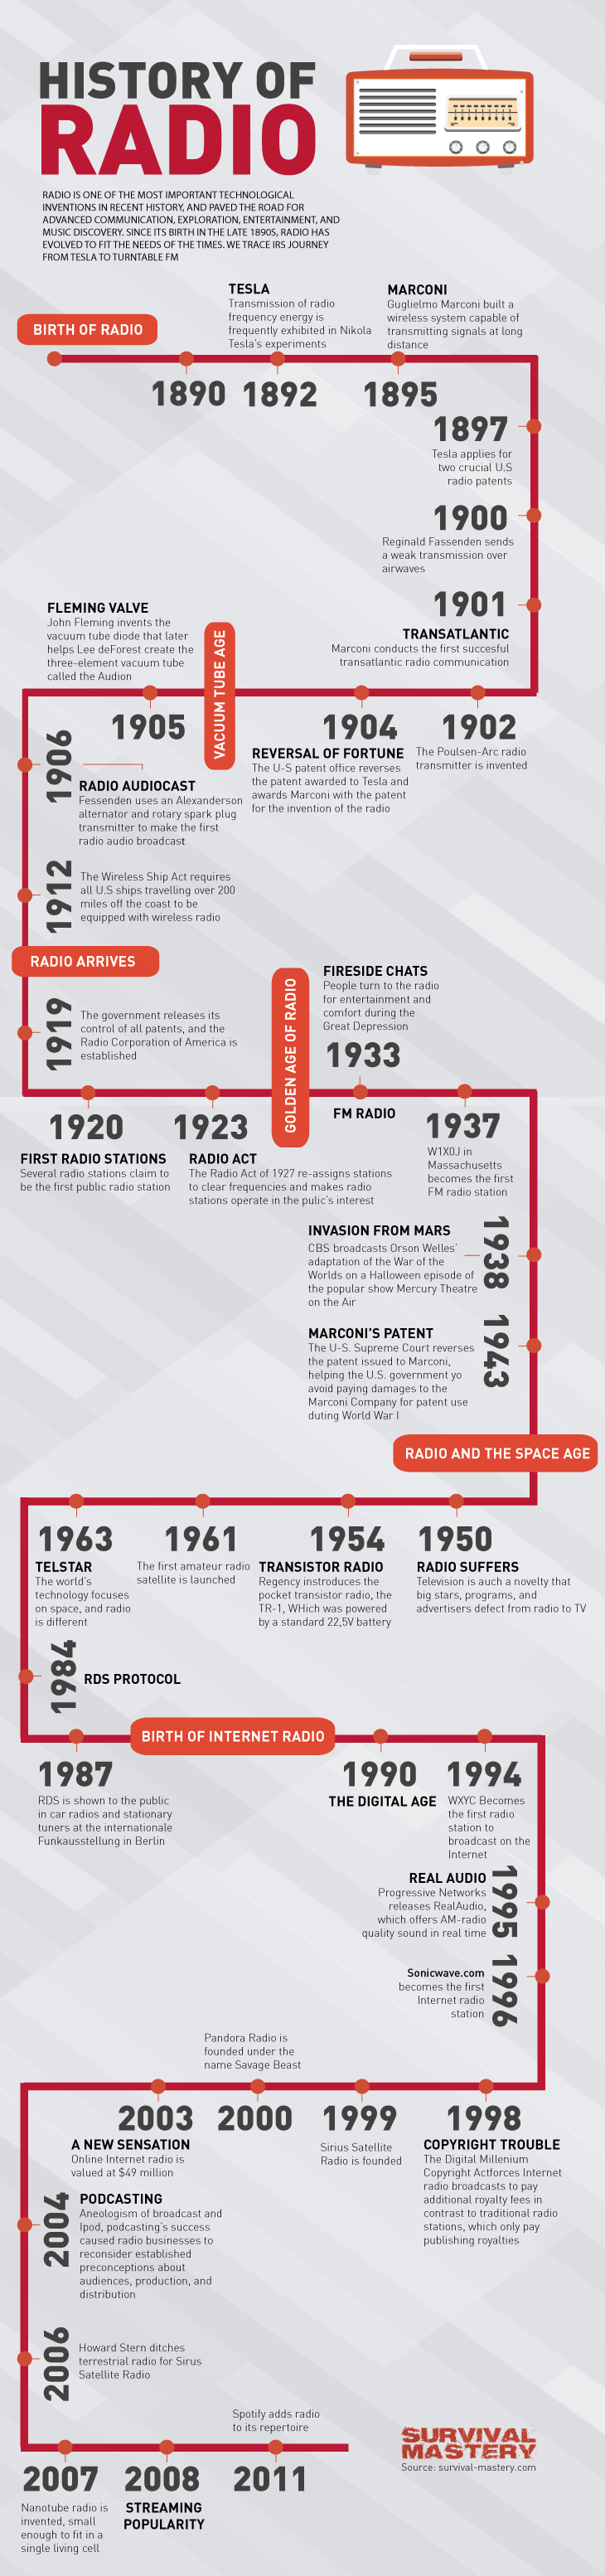 History of radio infographic